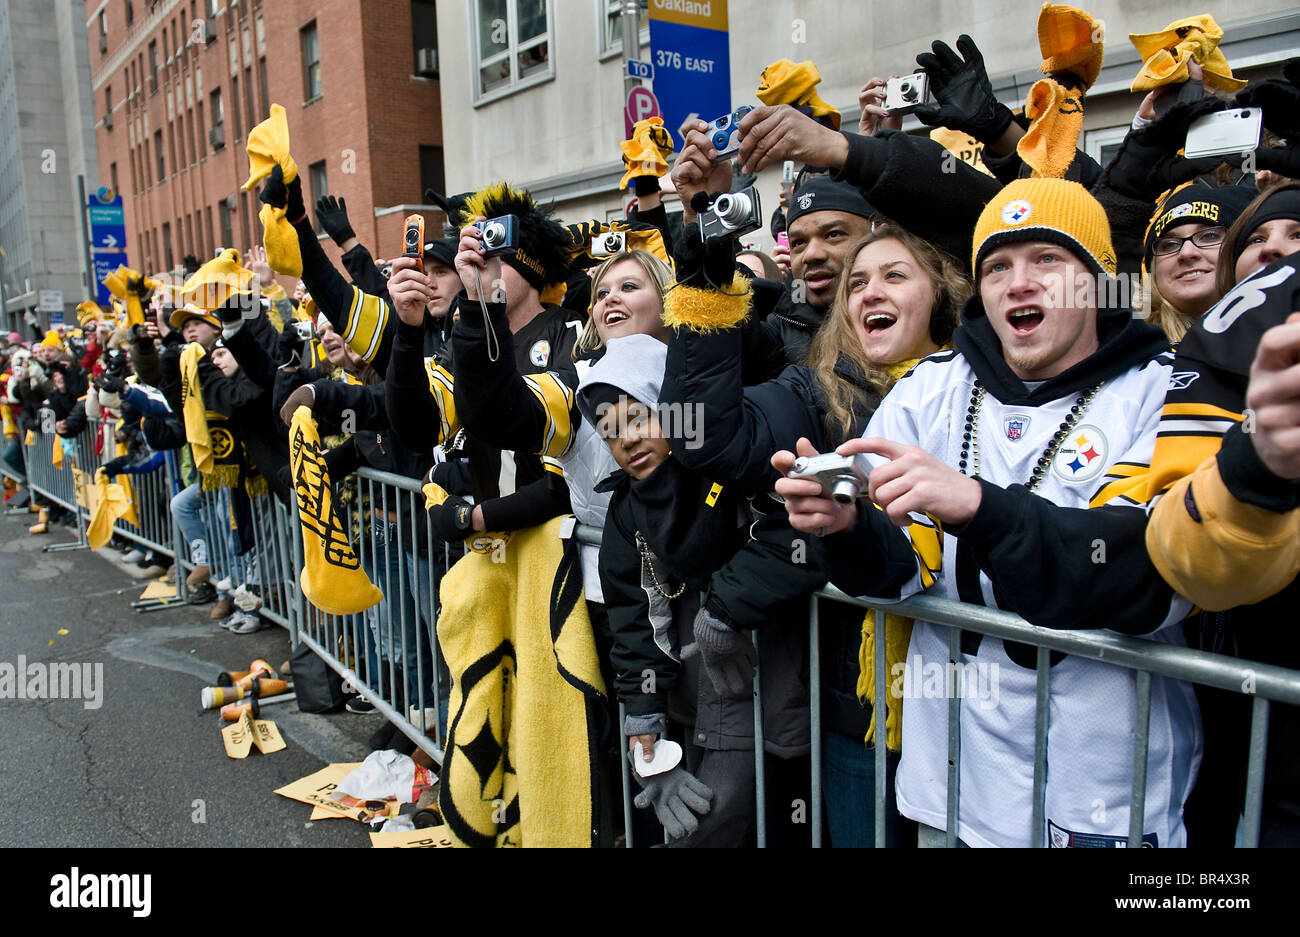 Victory Parade in downtown Pittsburgh to honor the new Super Bowl Champions. 350 thousand fans showed up - Stock Image